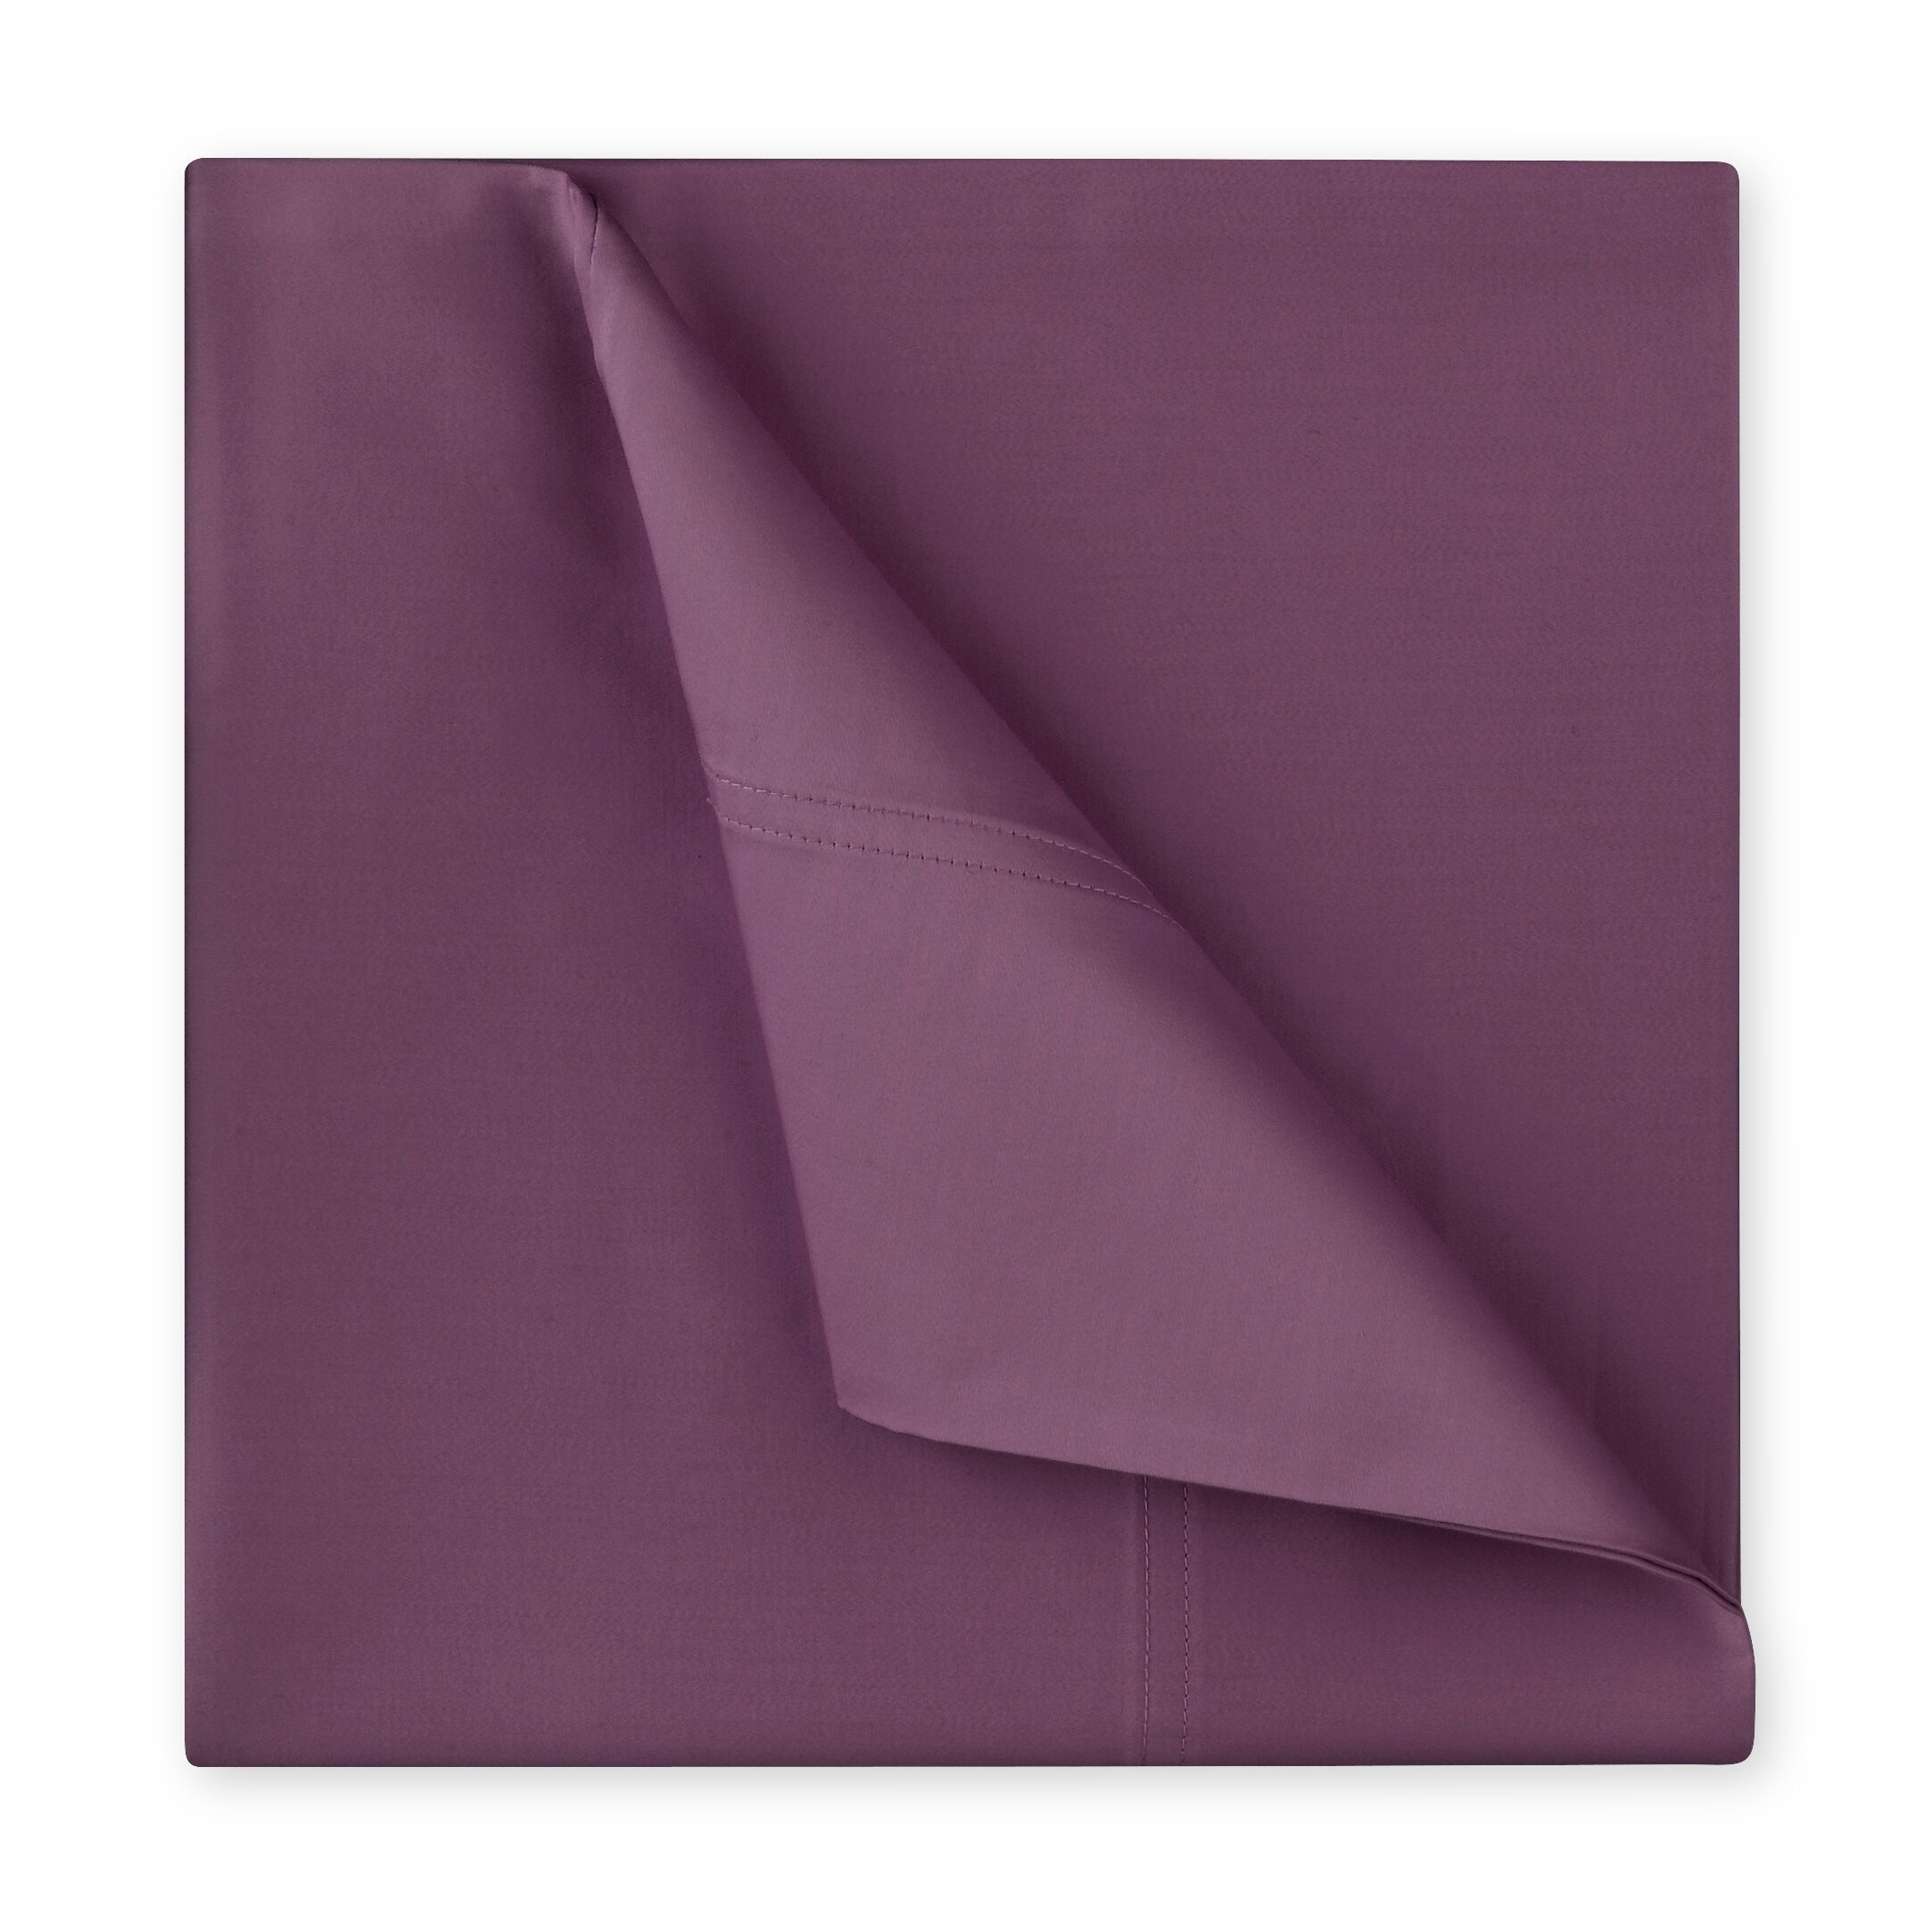 Williamsburg 400 Thread Count Cotton Sateen Sheet Set Color: Berry, Size: Full/Double